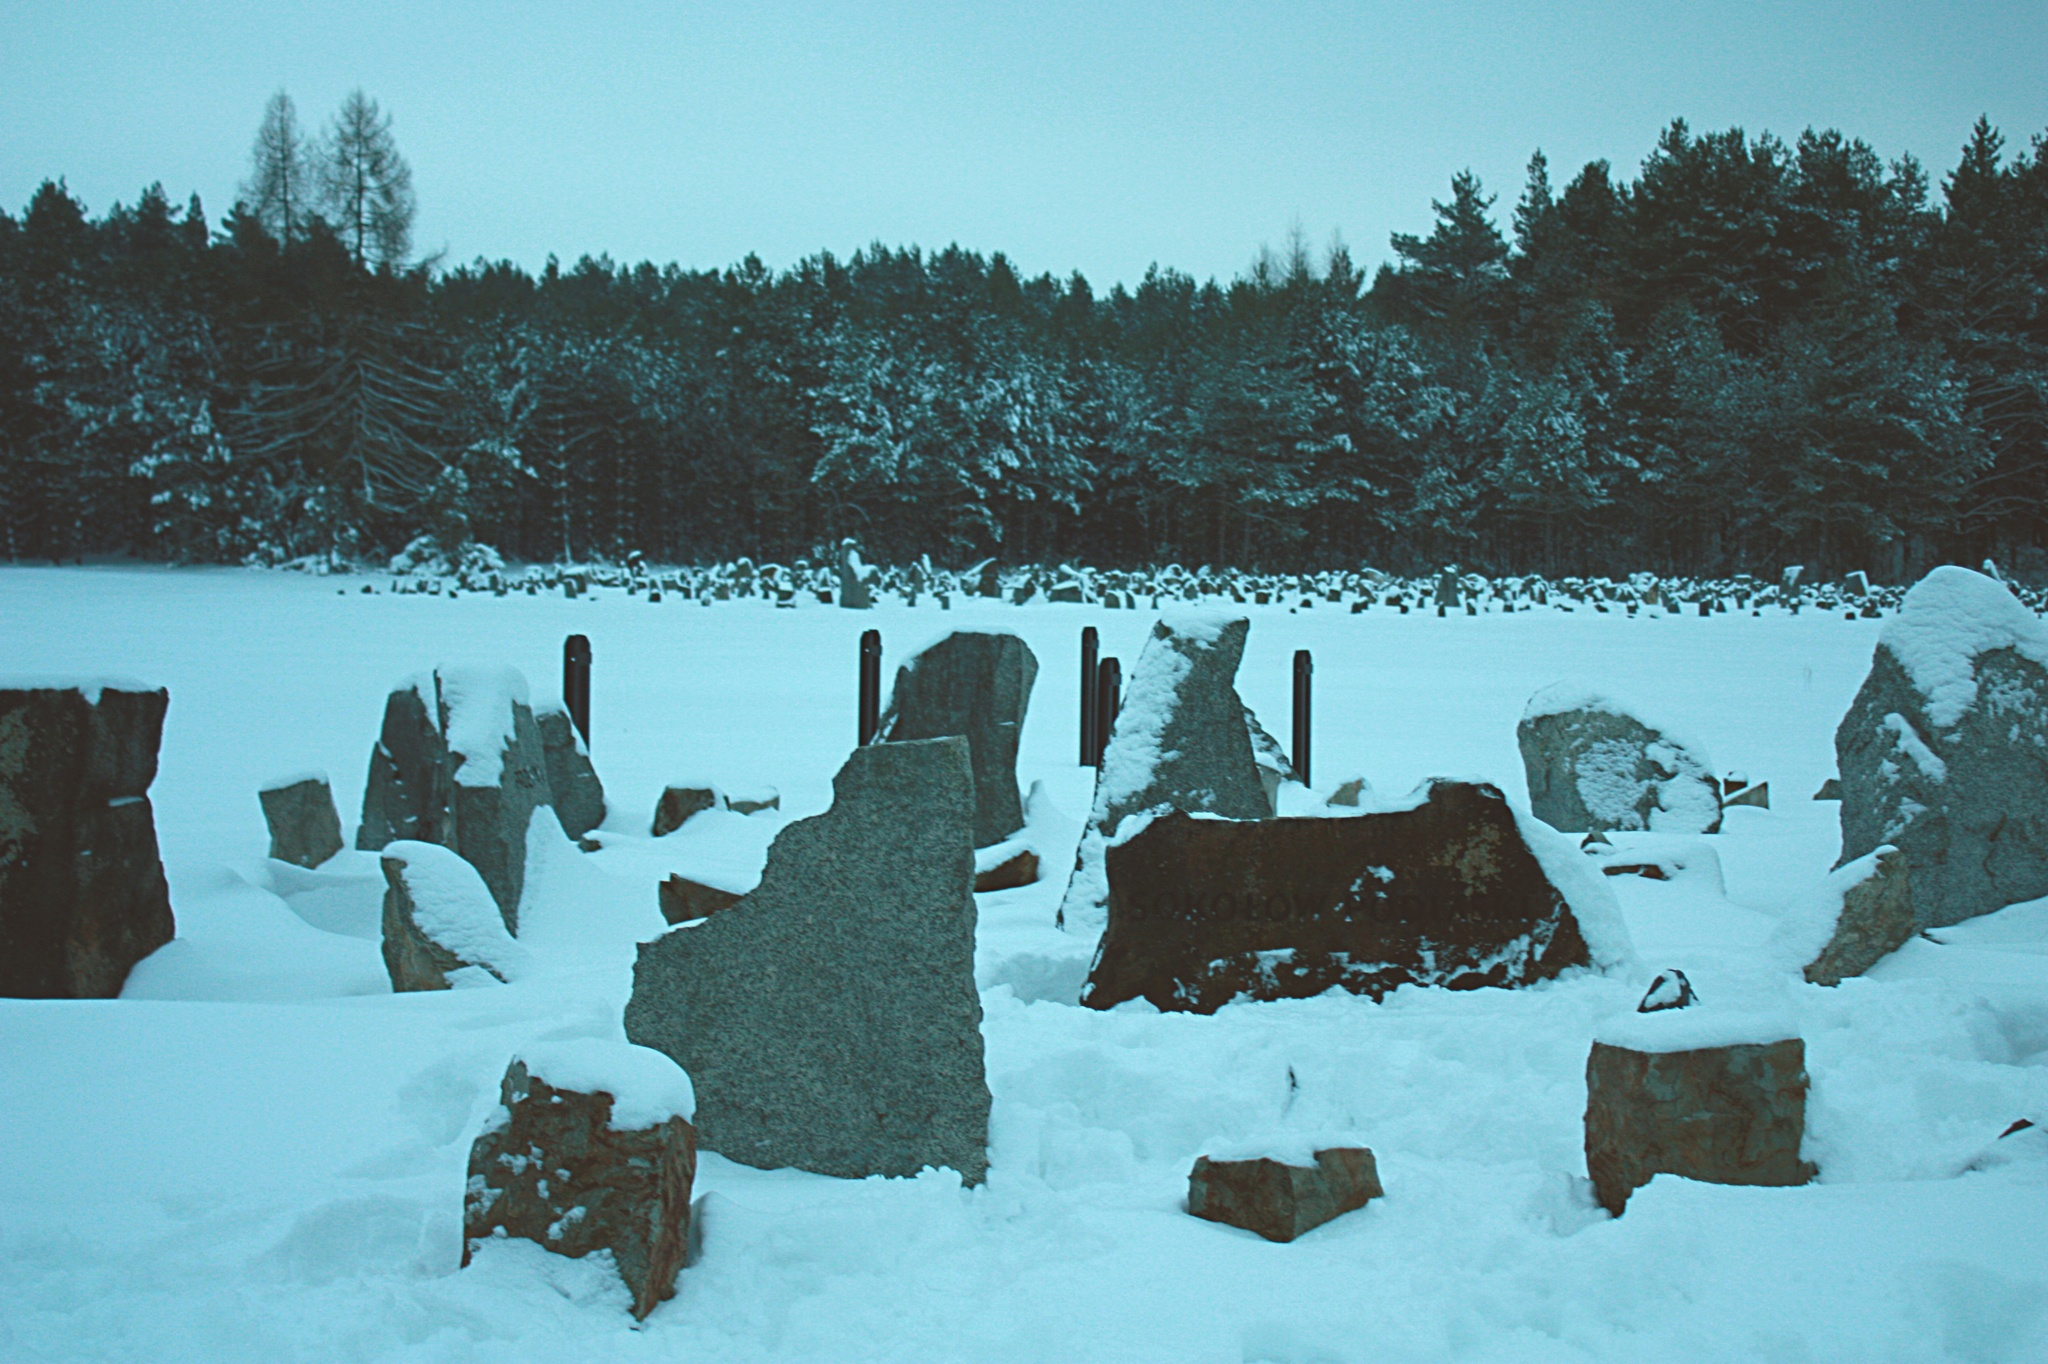 Buried communities by Hilula